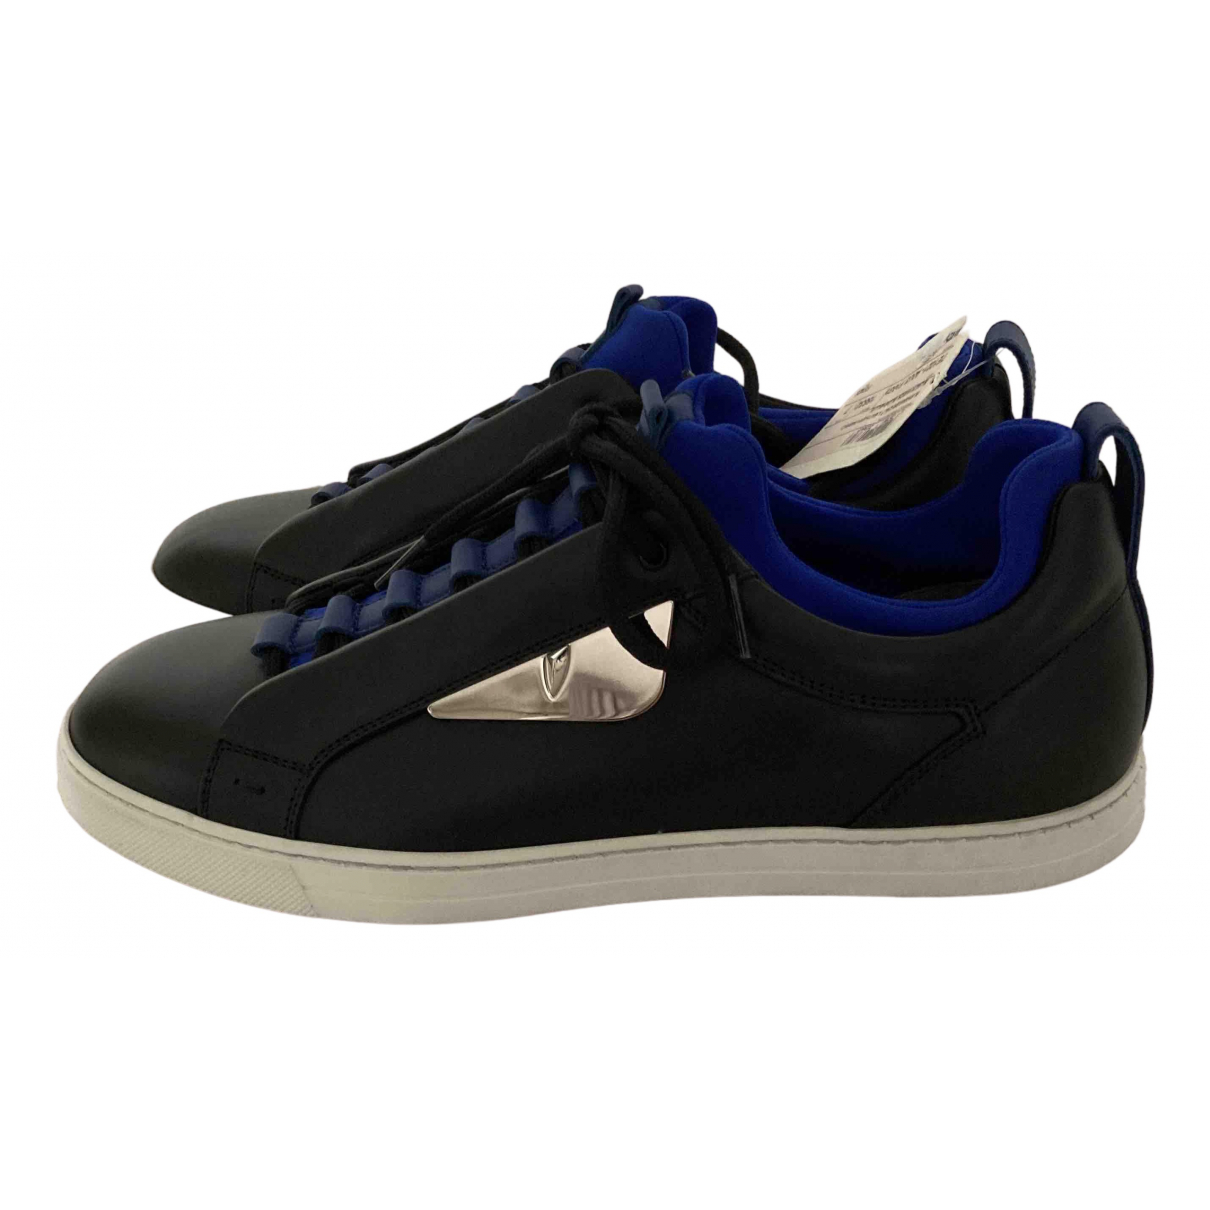 Fendi N Black Leather Trainers for Men 7 UK